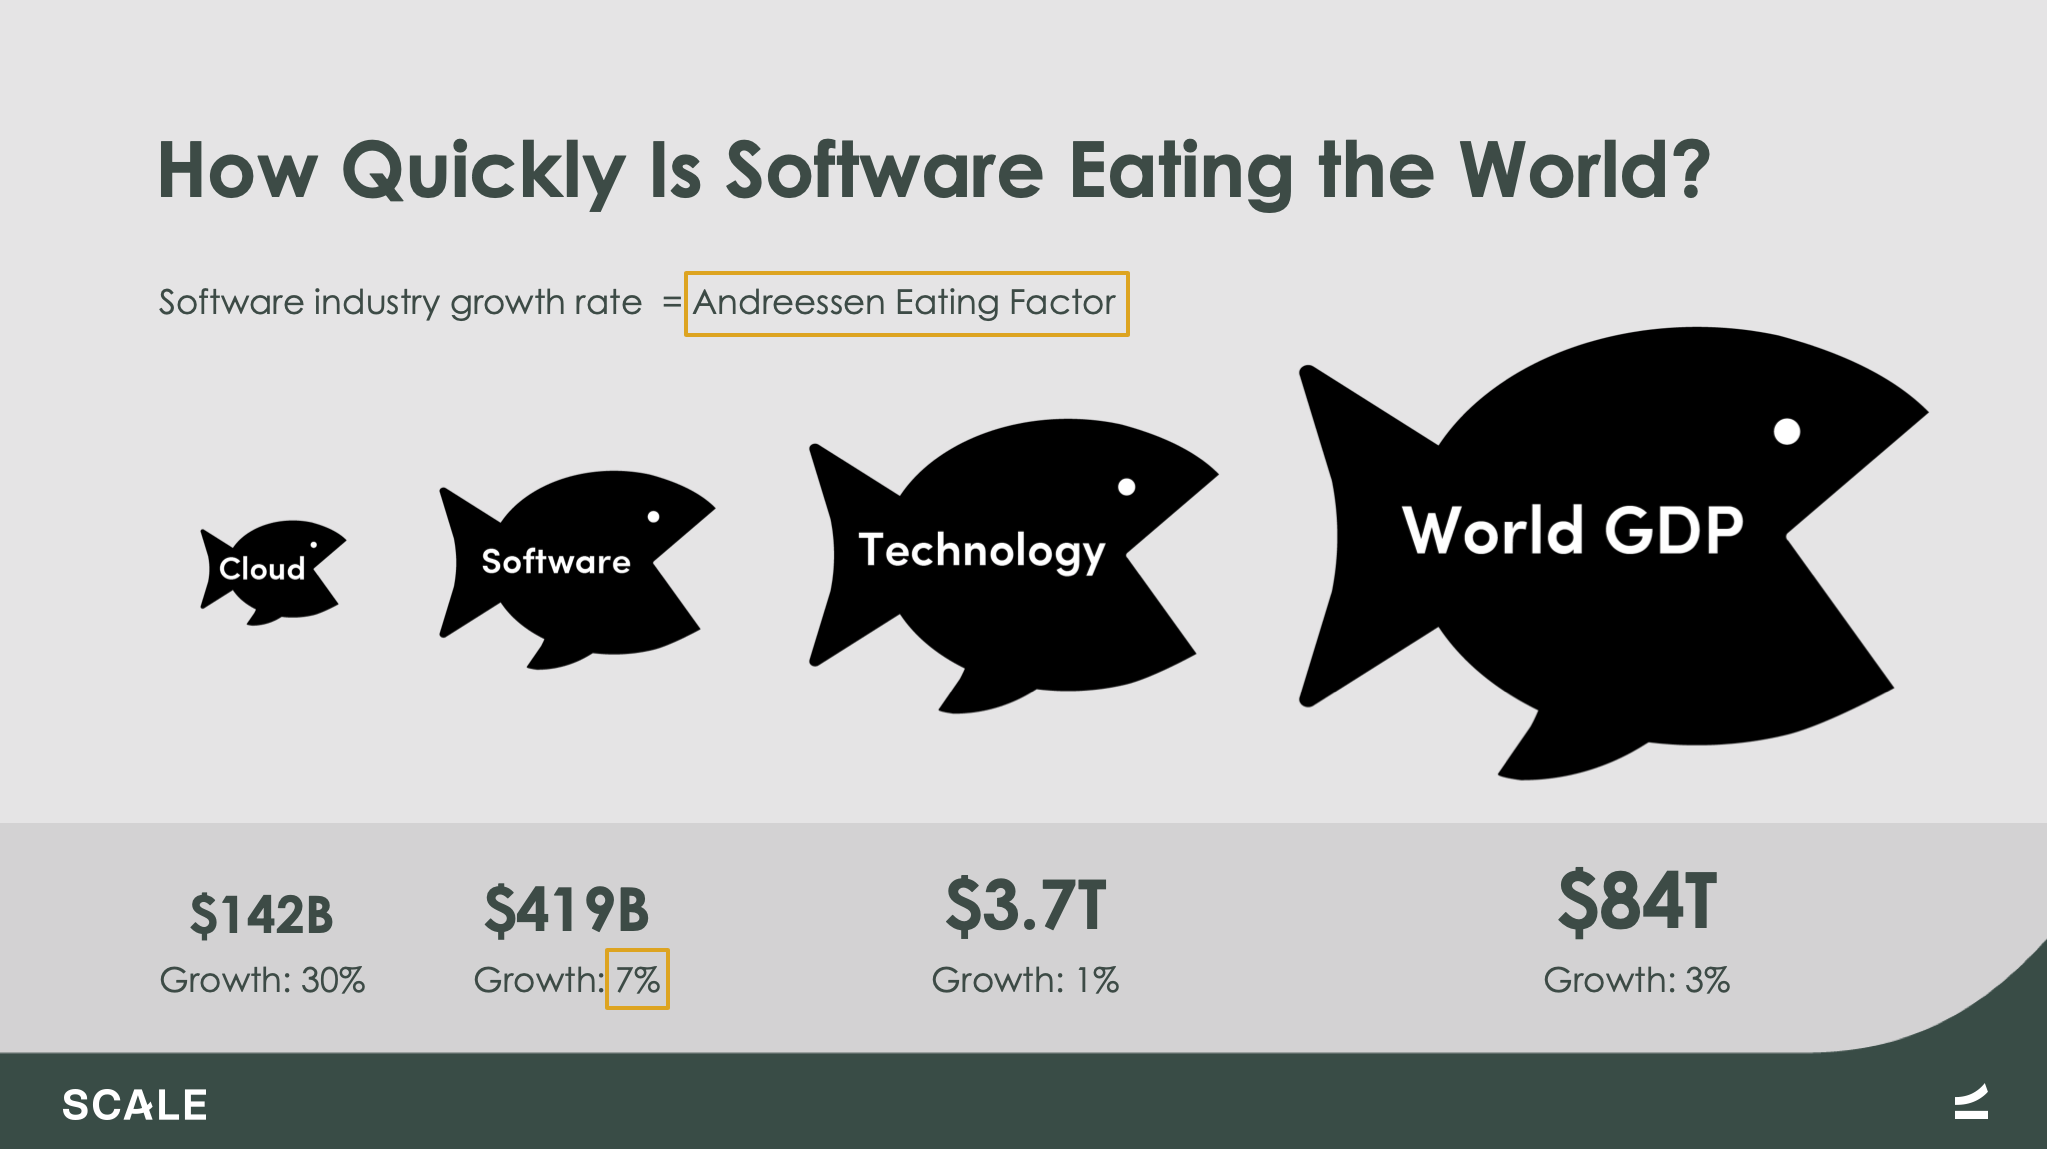 Investing in the Cloud Gold Rush to Hunger Games and Beyond | Scale Venture Partners | Andreessen Eating Factor 1